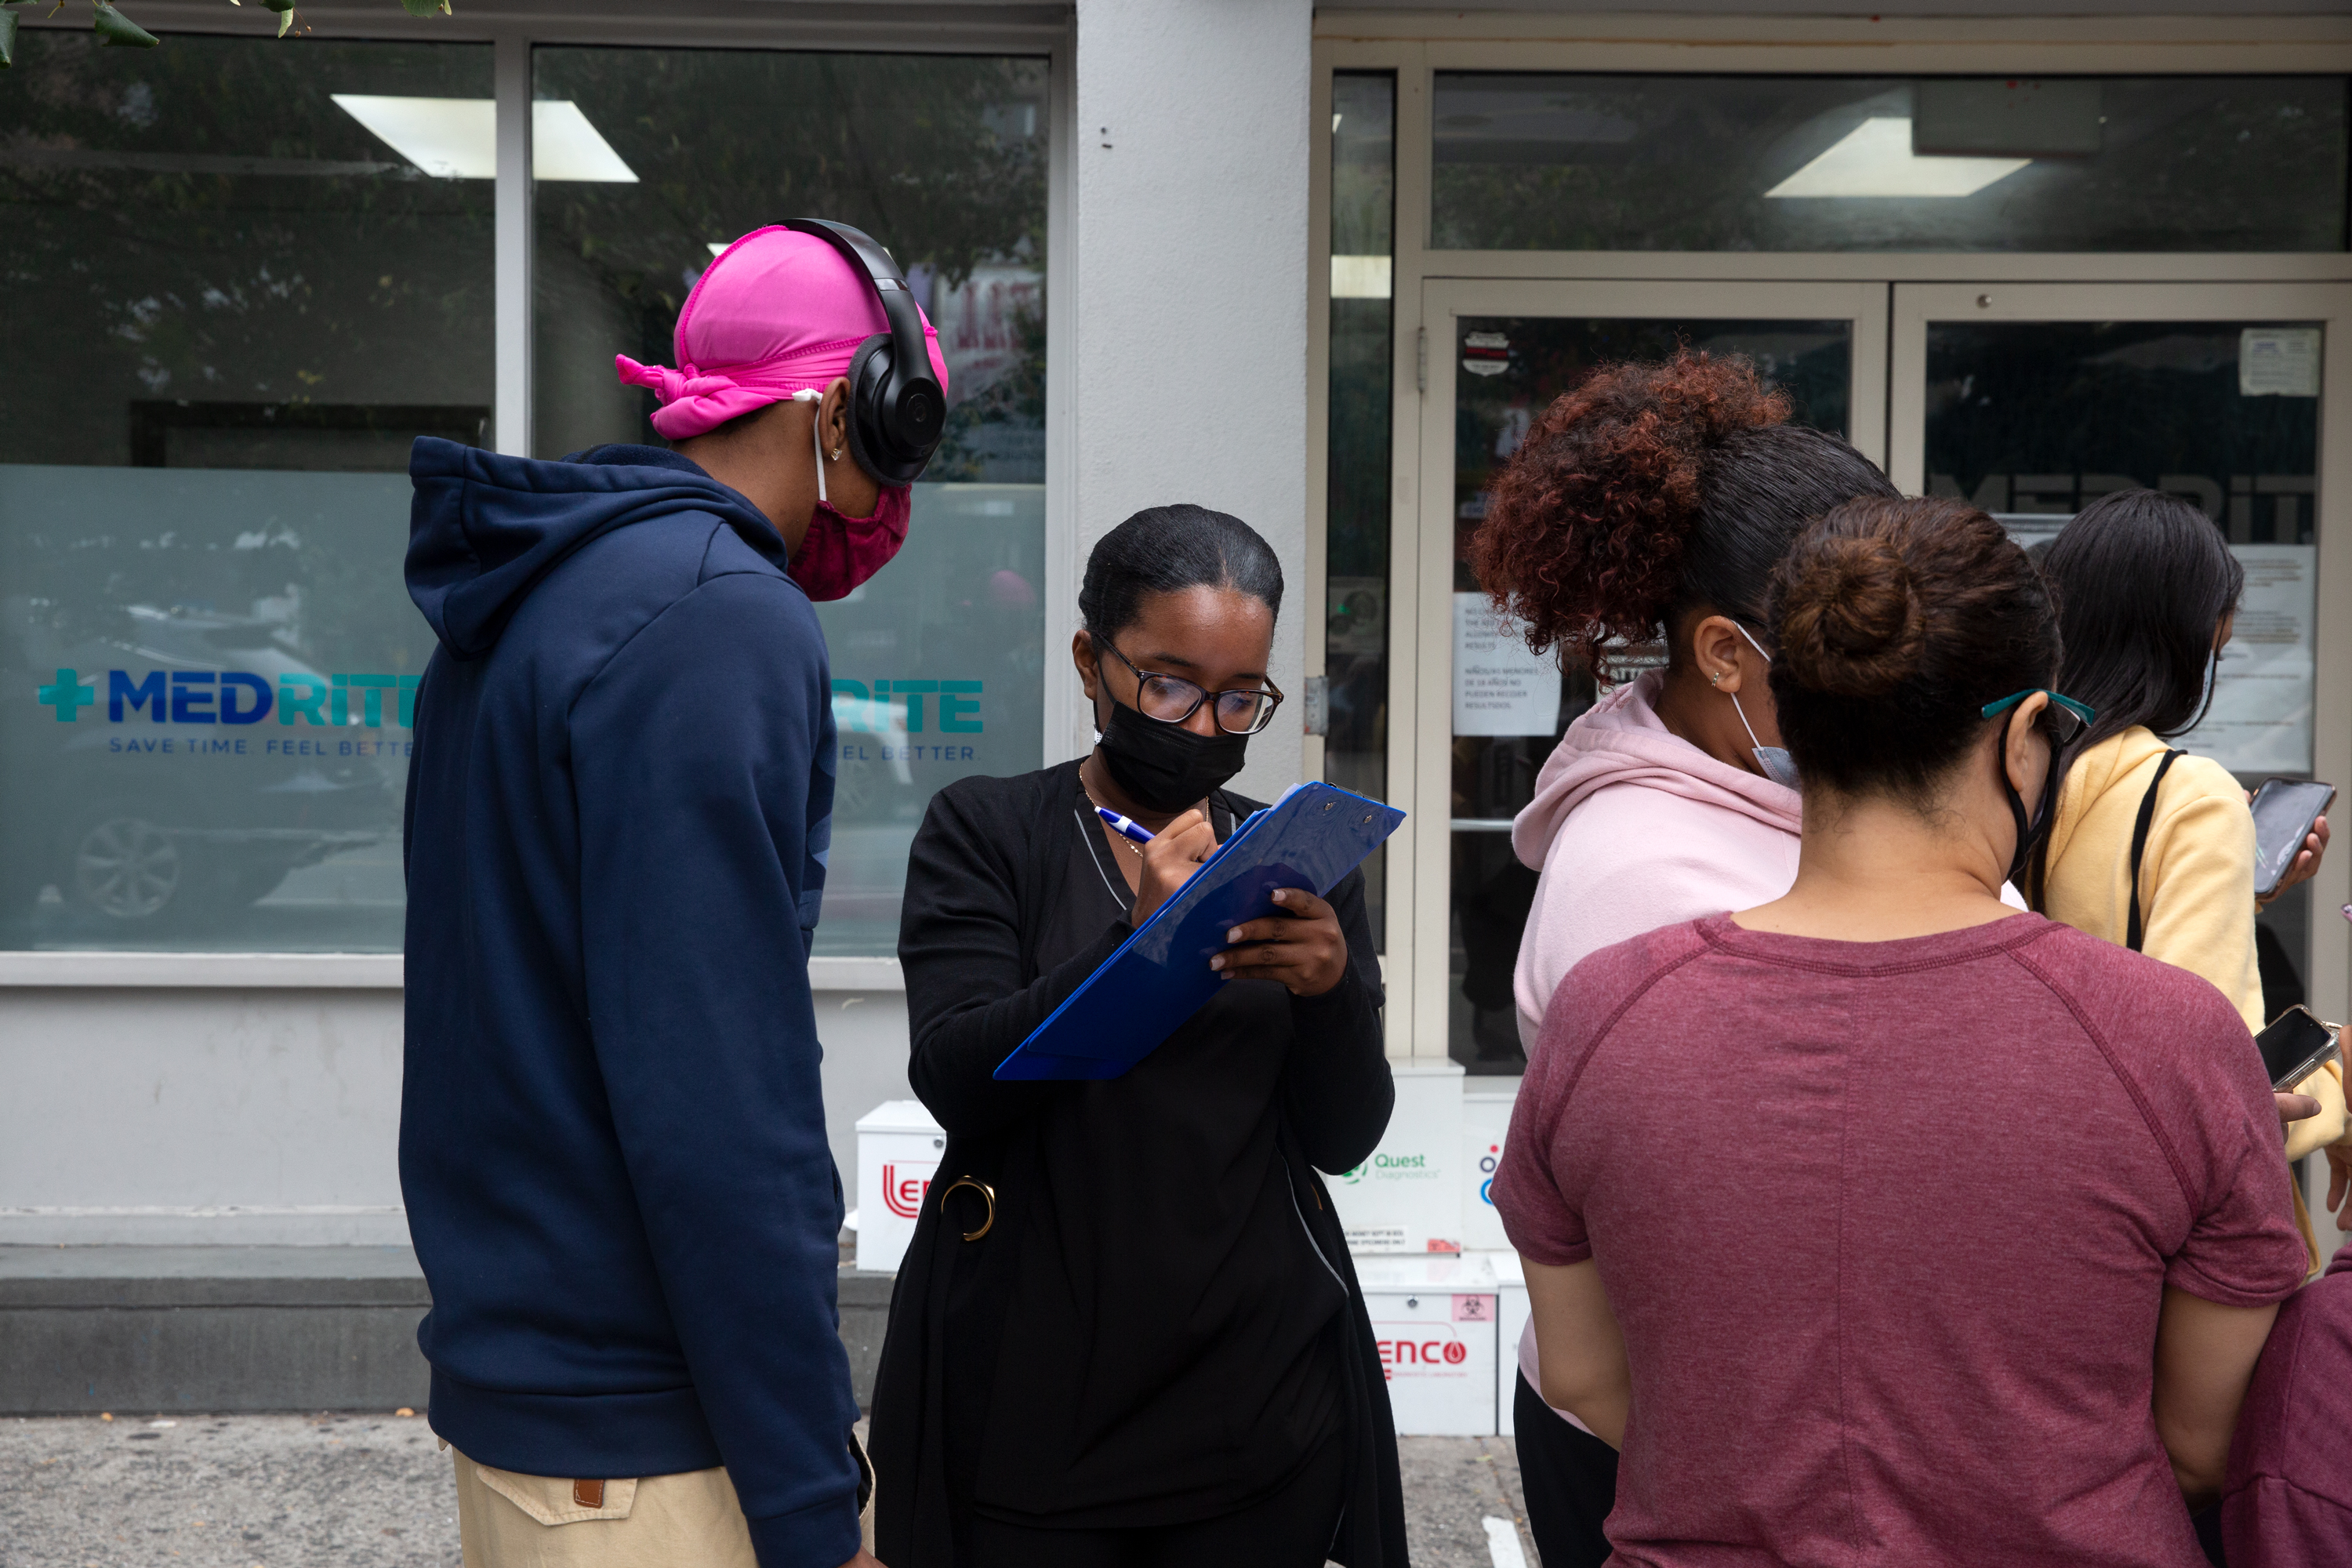 A health care worker signs people in outside an urgent care COVID testing site on Dyckman Street in Inwood, Oct. 6, 2021.